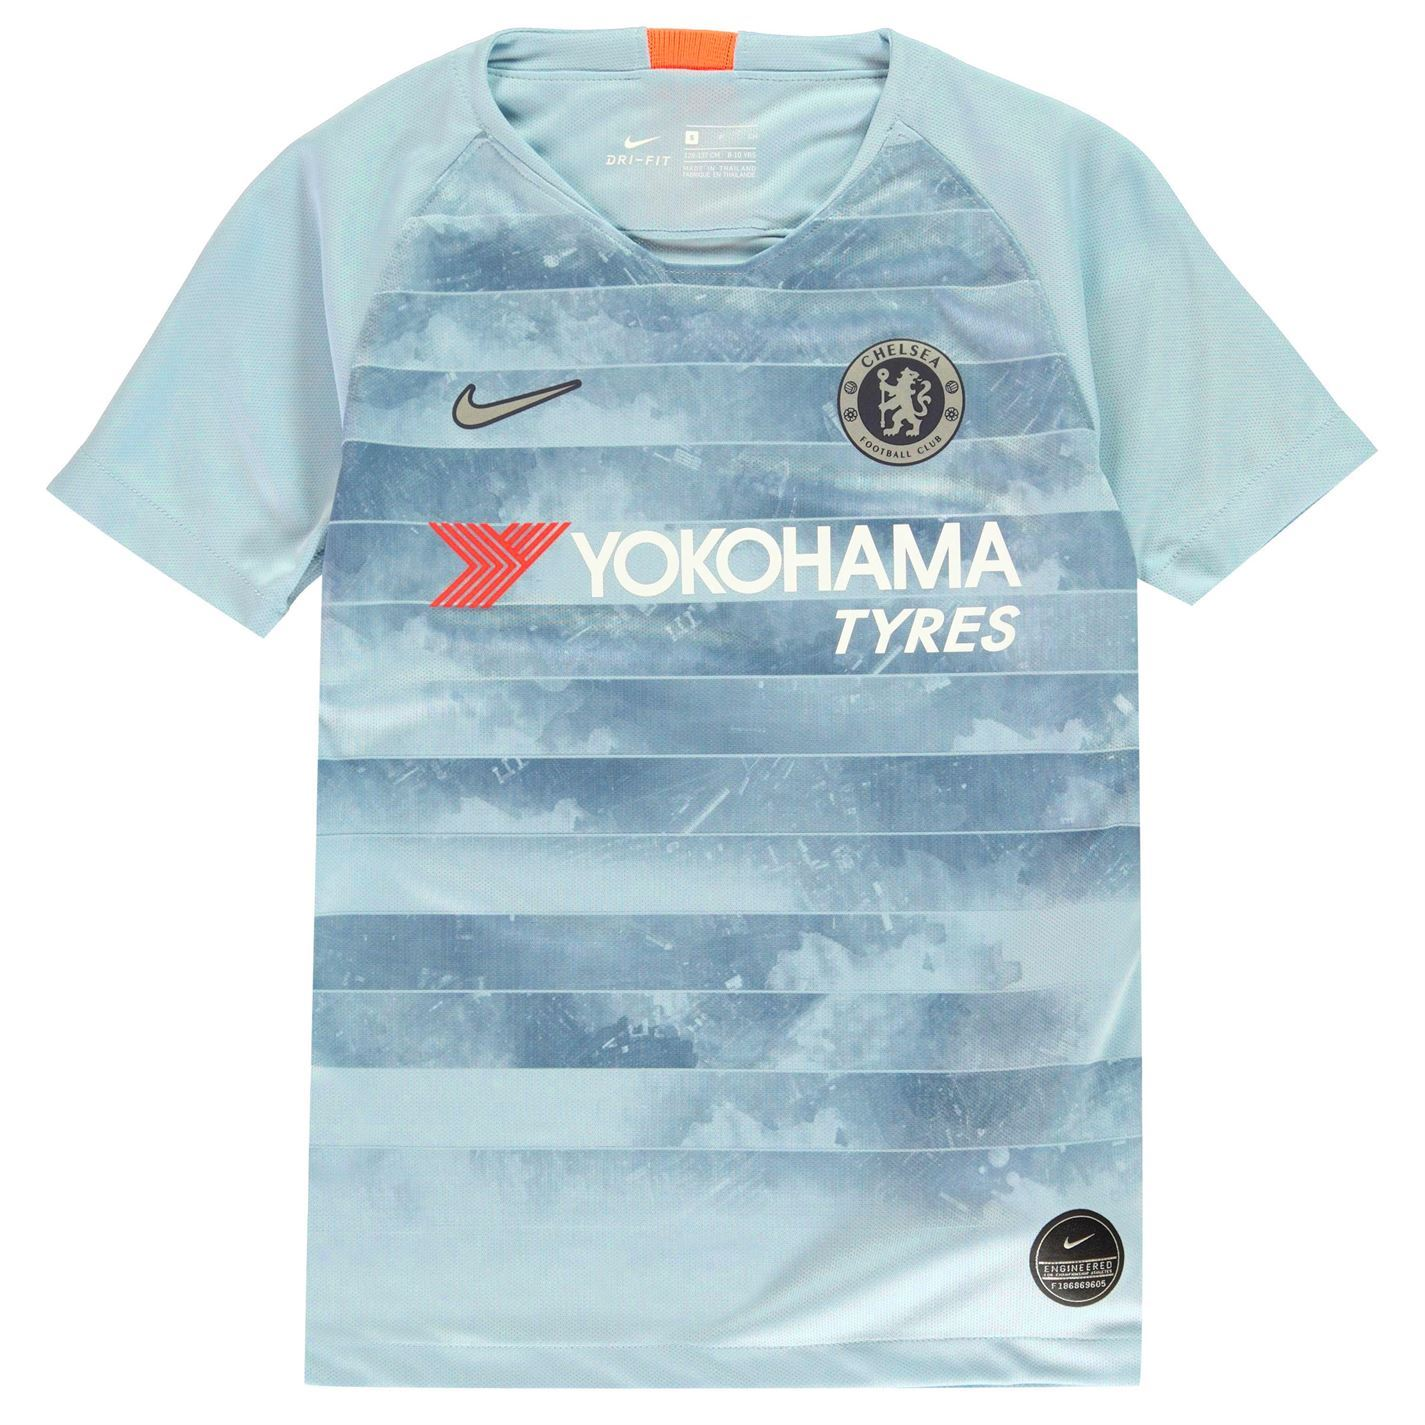 finest selection c739c 0f3c0 Details about Nike Chelsea Third Jersey 2018 2019 Juniors Blue/Silver  Football Soccer Shirt